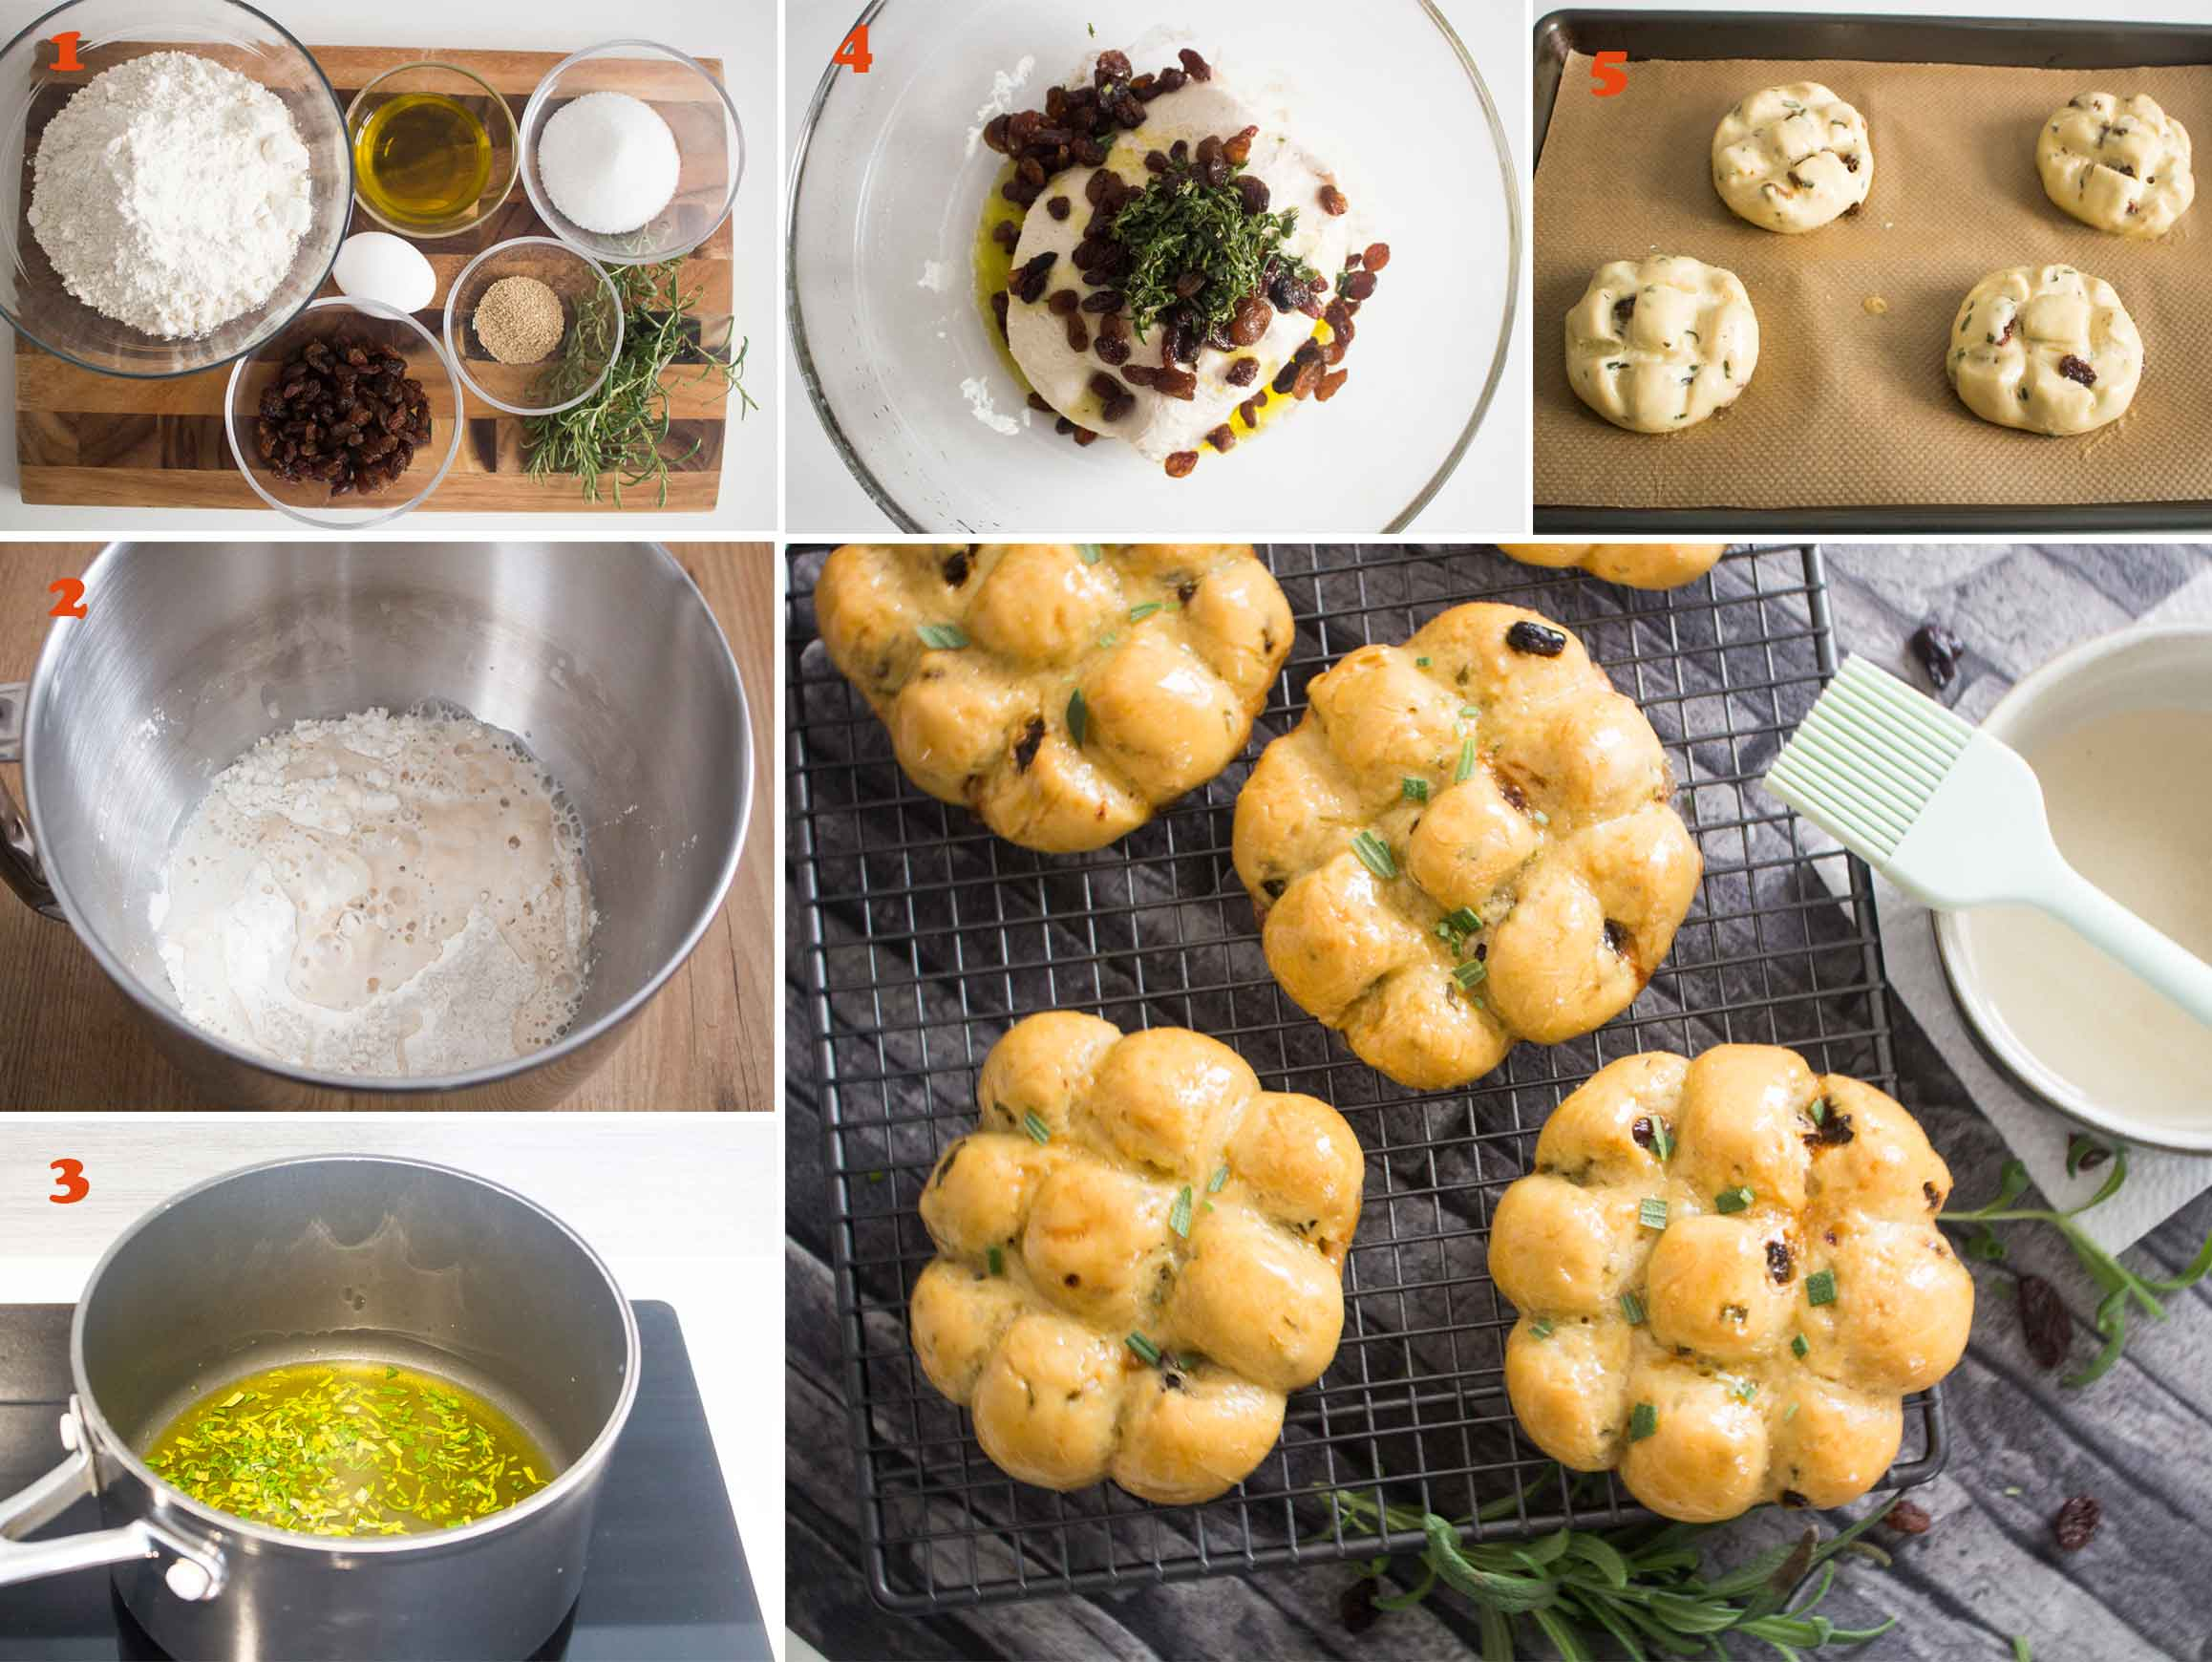 Collage of images showing the steps on how to make Tuscan Rosemary and Raisin buns (Pan di ramerino).